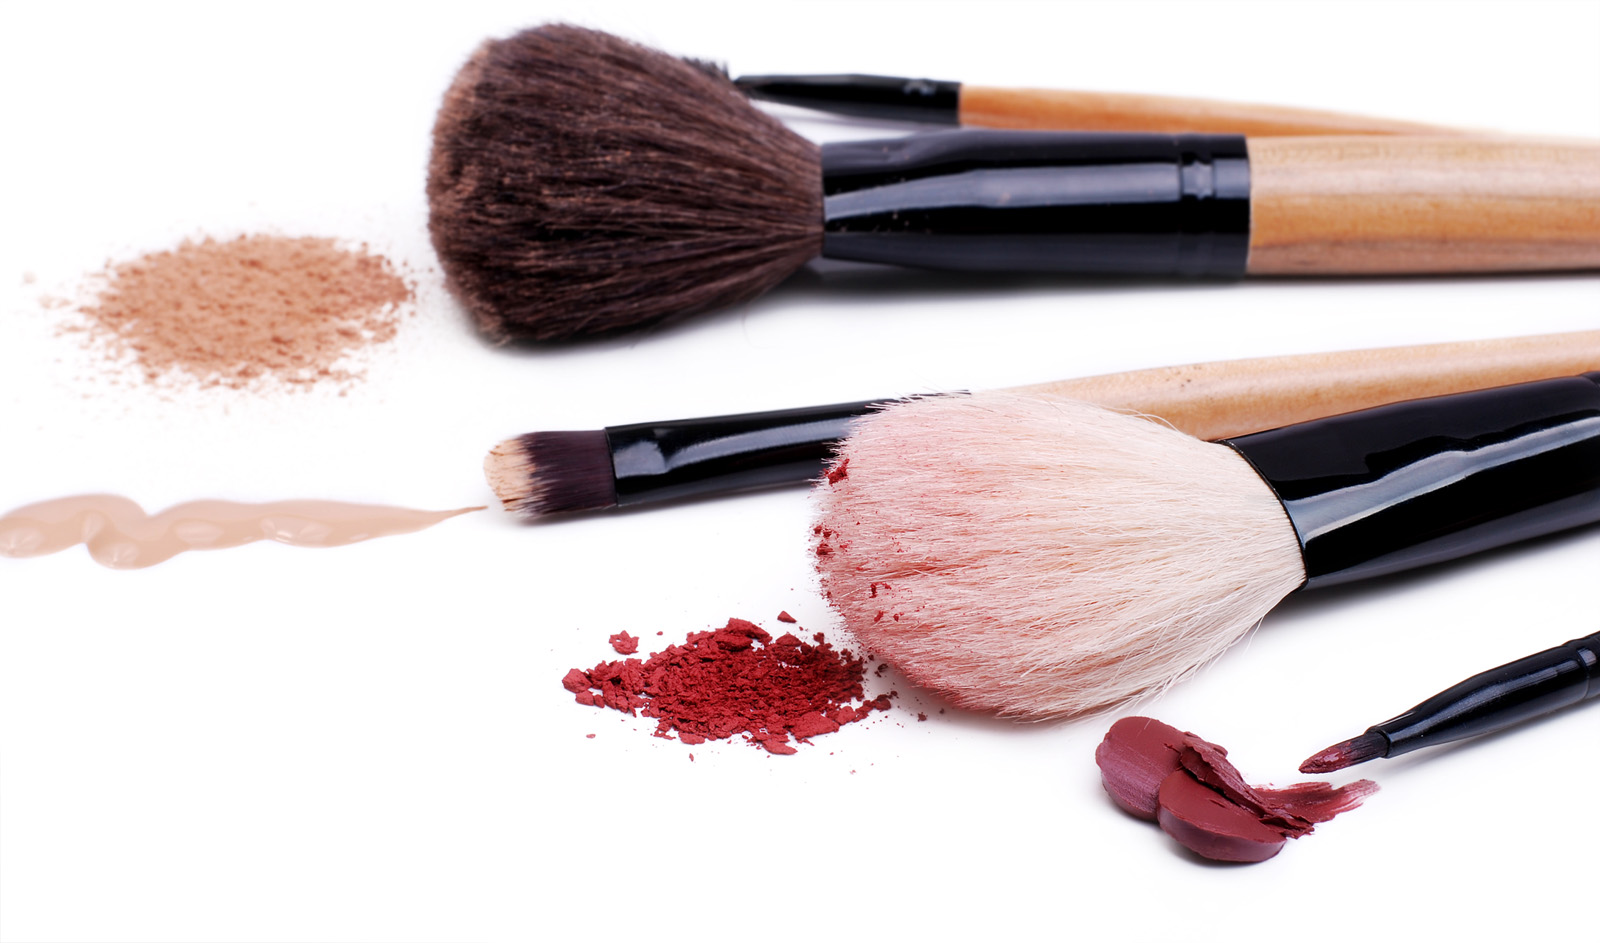 Set of makeup professional brushes with sample cosmetics